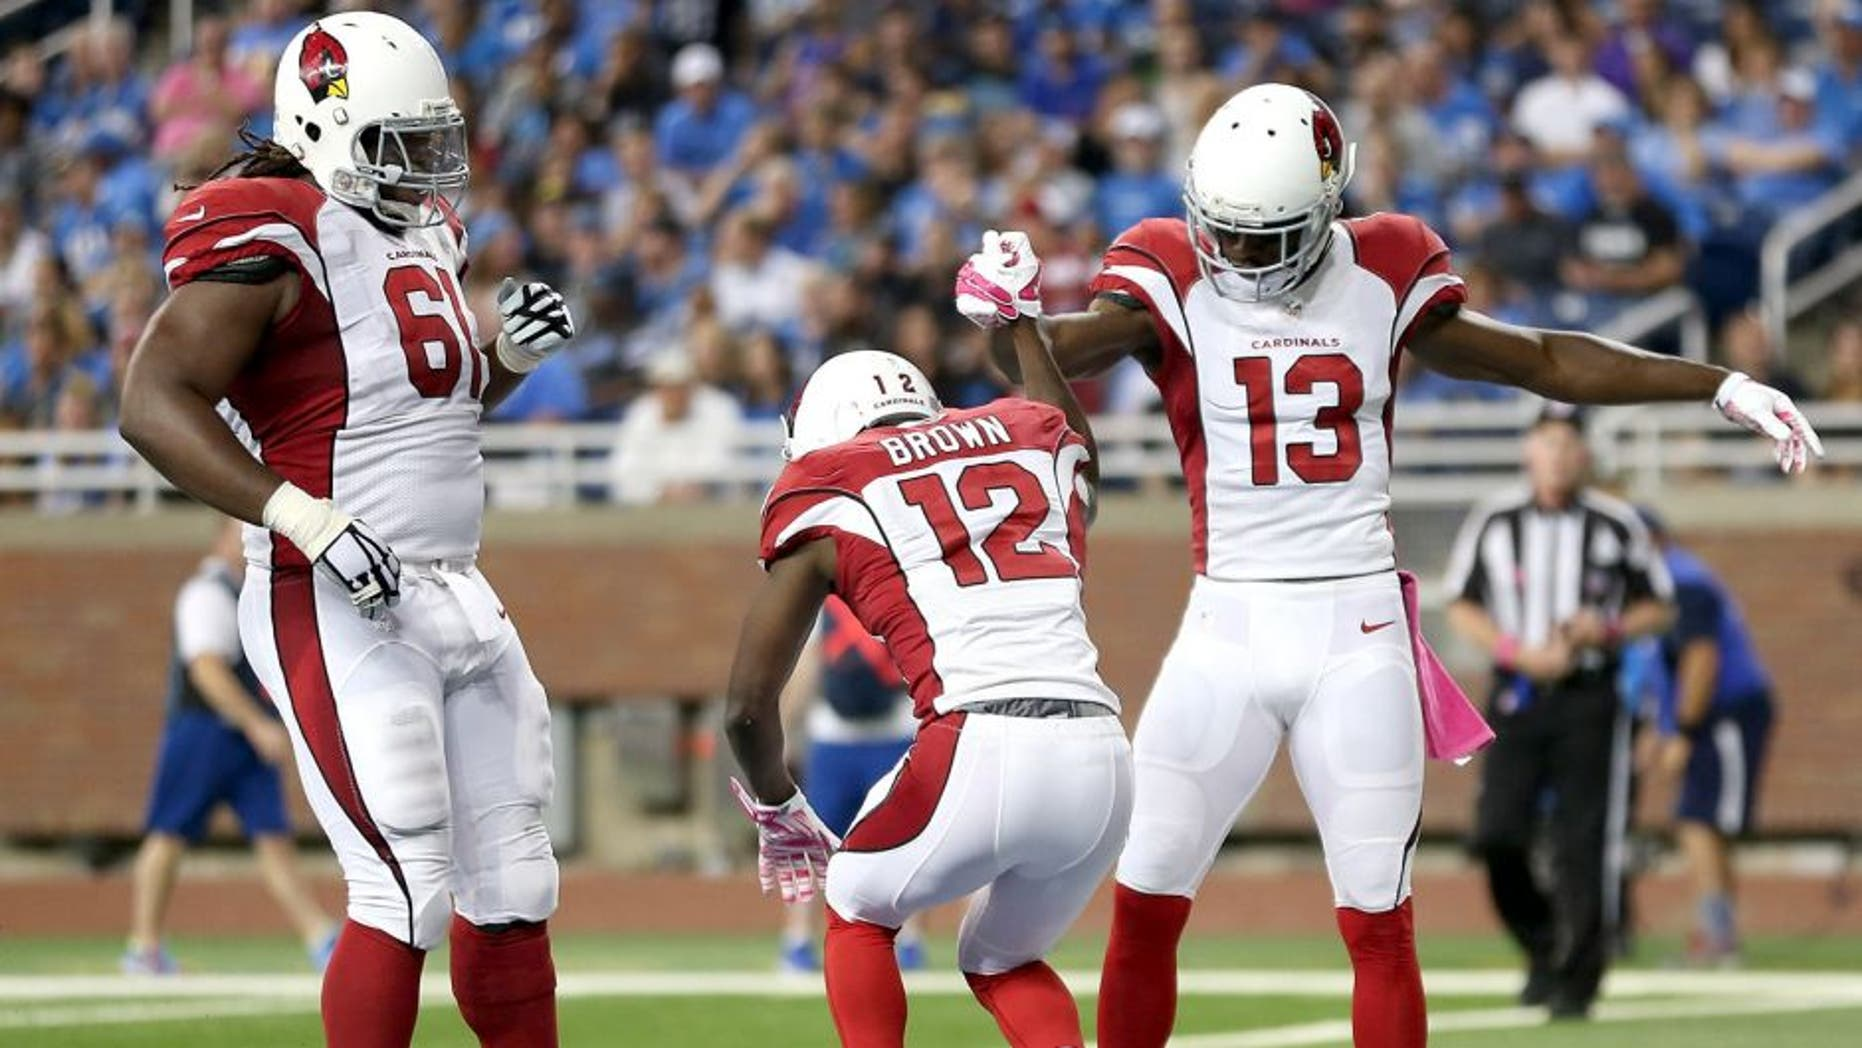 DETROIT MI - OCTOBER 11: John Brown of the Arizona Cardinals celebrates his second-quarter touchdown against the Detroit Lions with teammates Jaron Brown and Jonathan Cooper on October 11, 2015 at Ford Field in Detroit, Michigan. (Photo by Leon Halip/Getty Images)